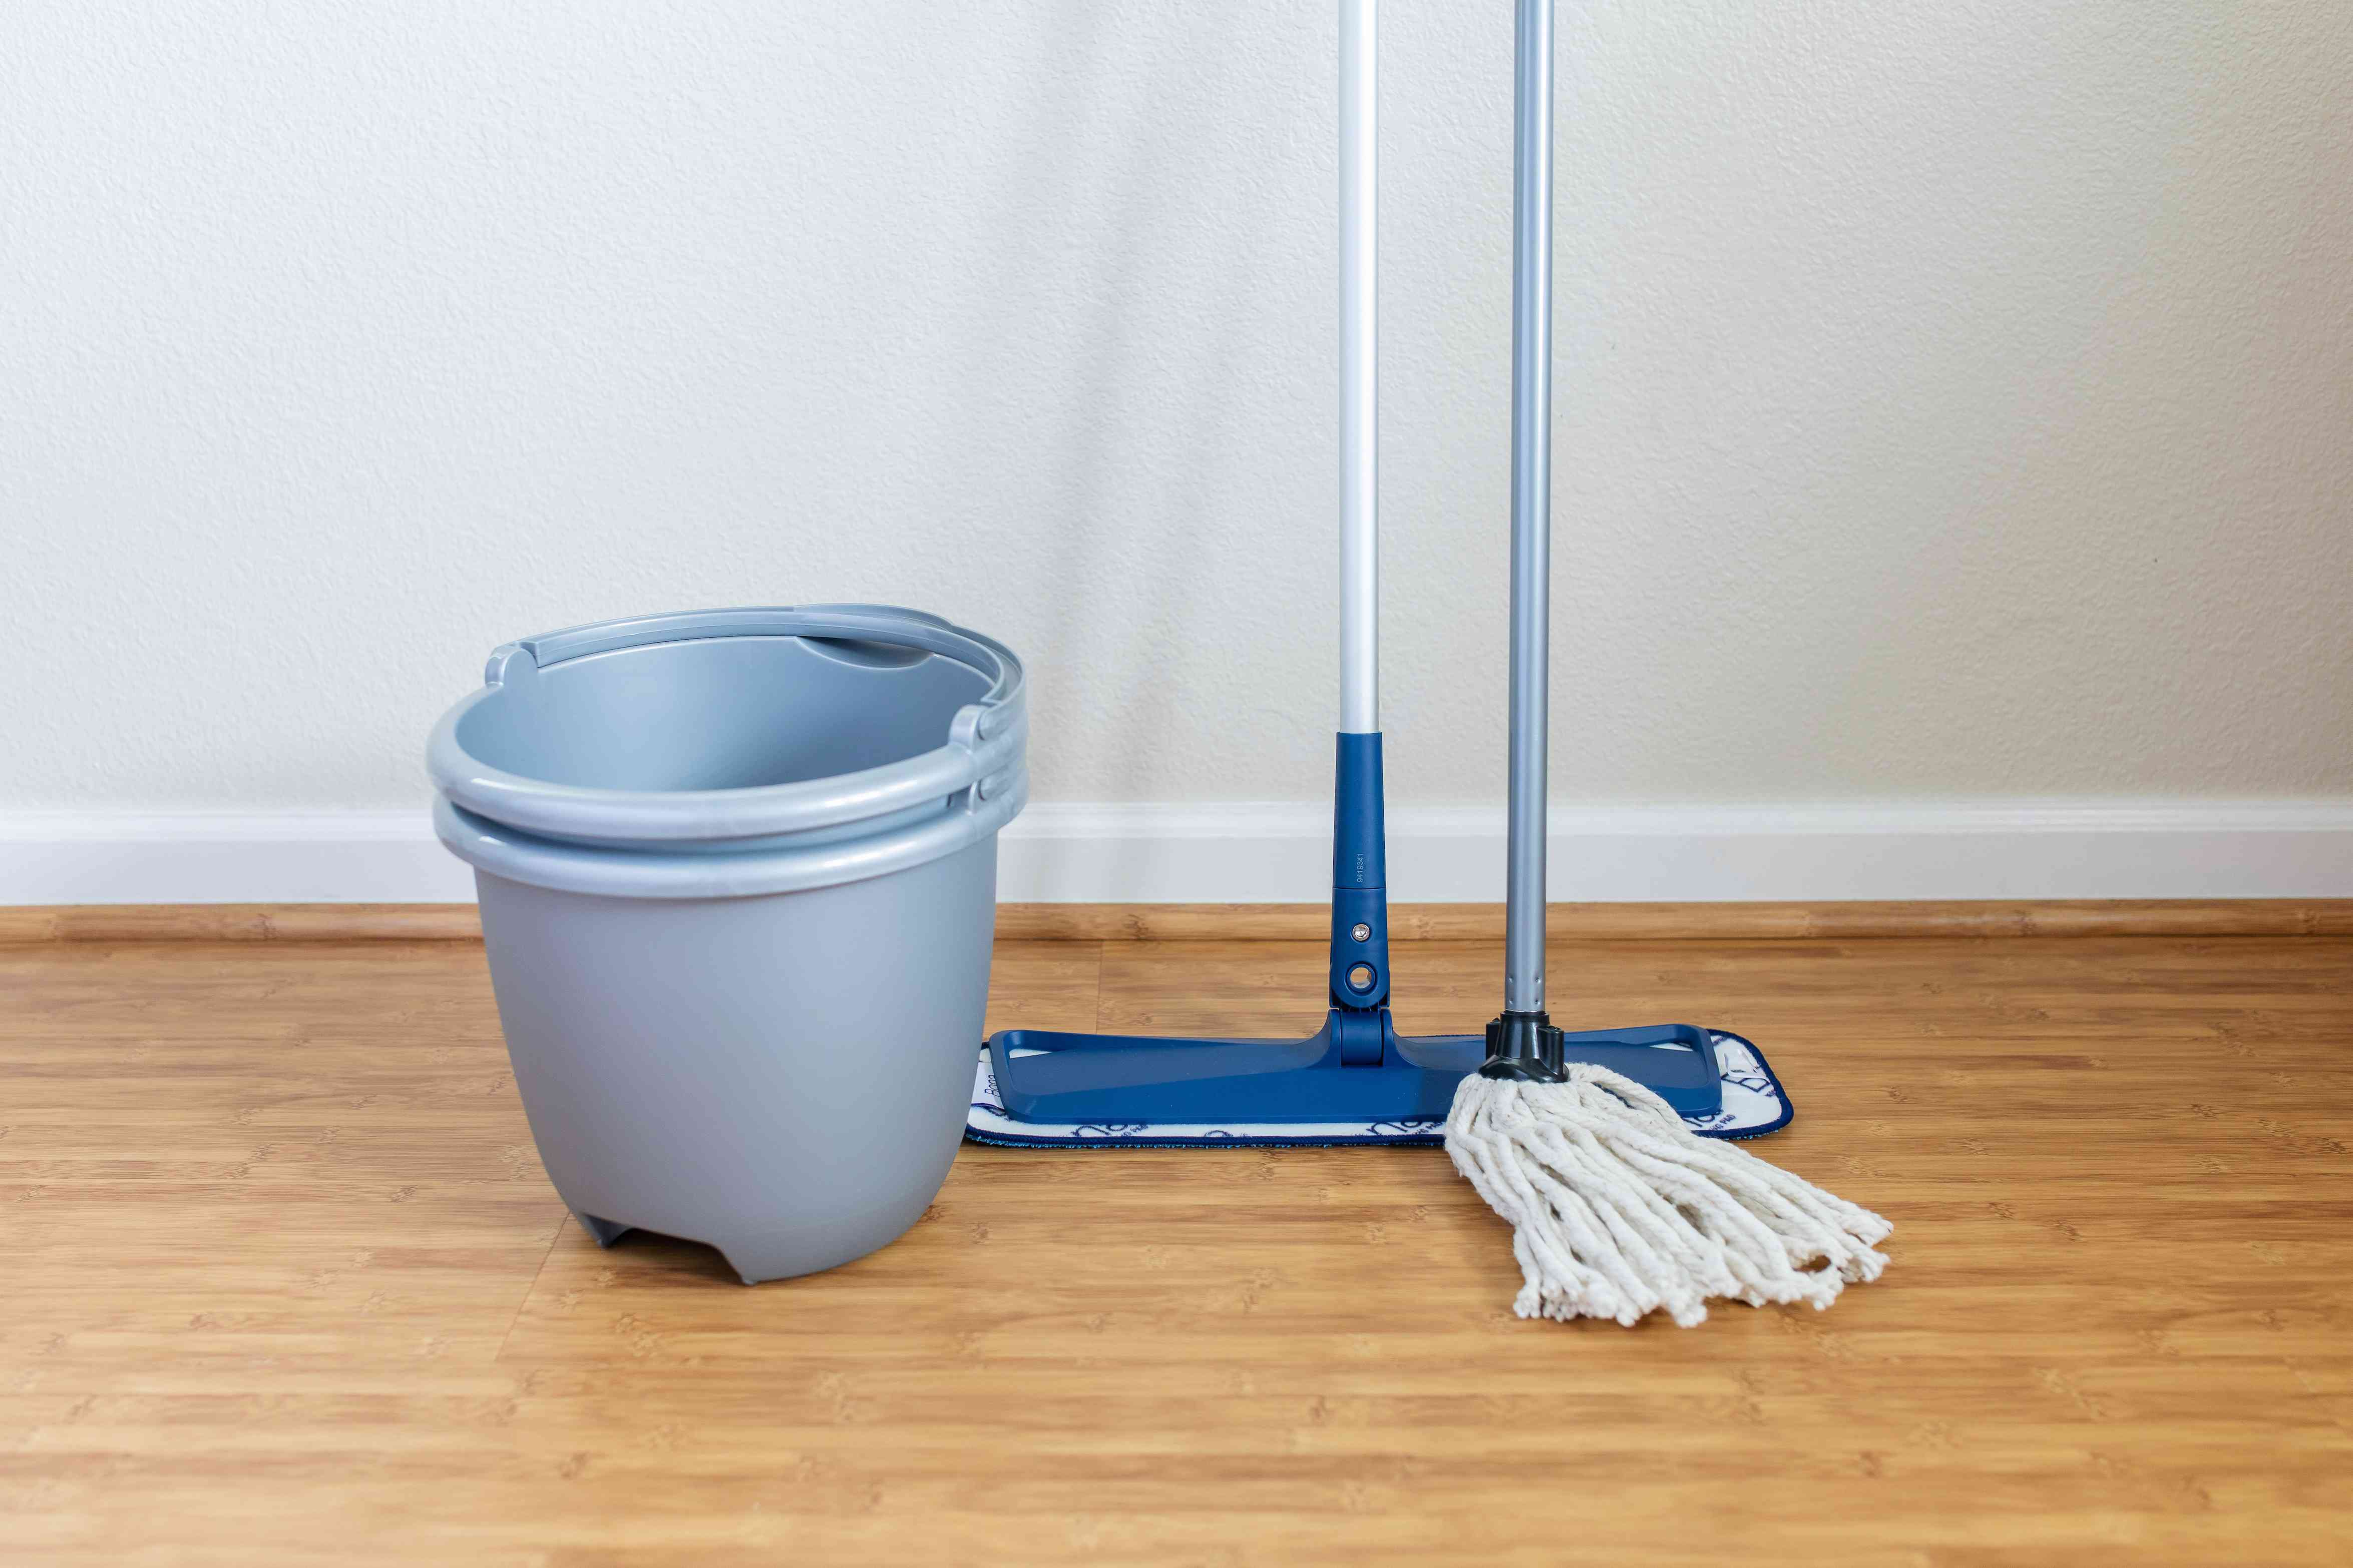 Choosing the right mop and buckets